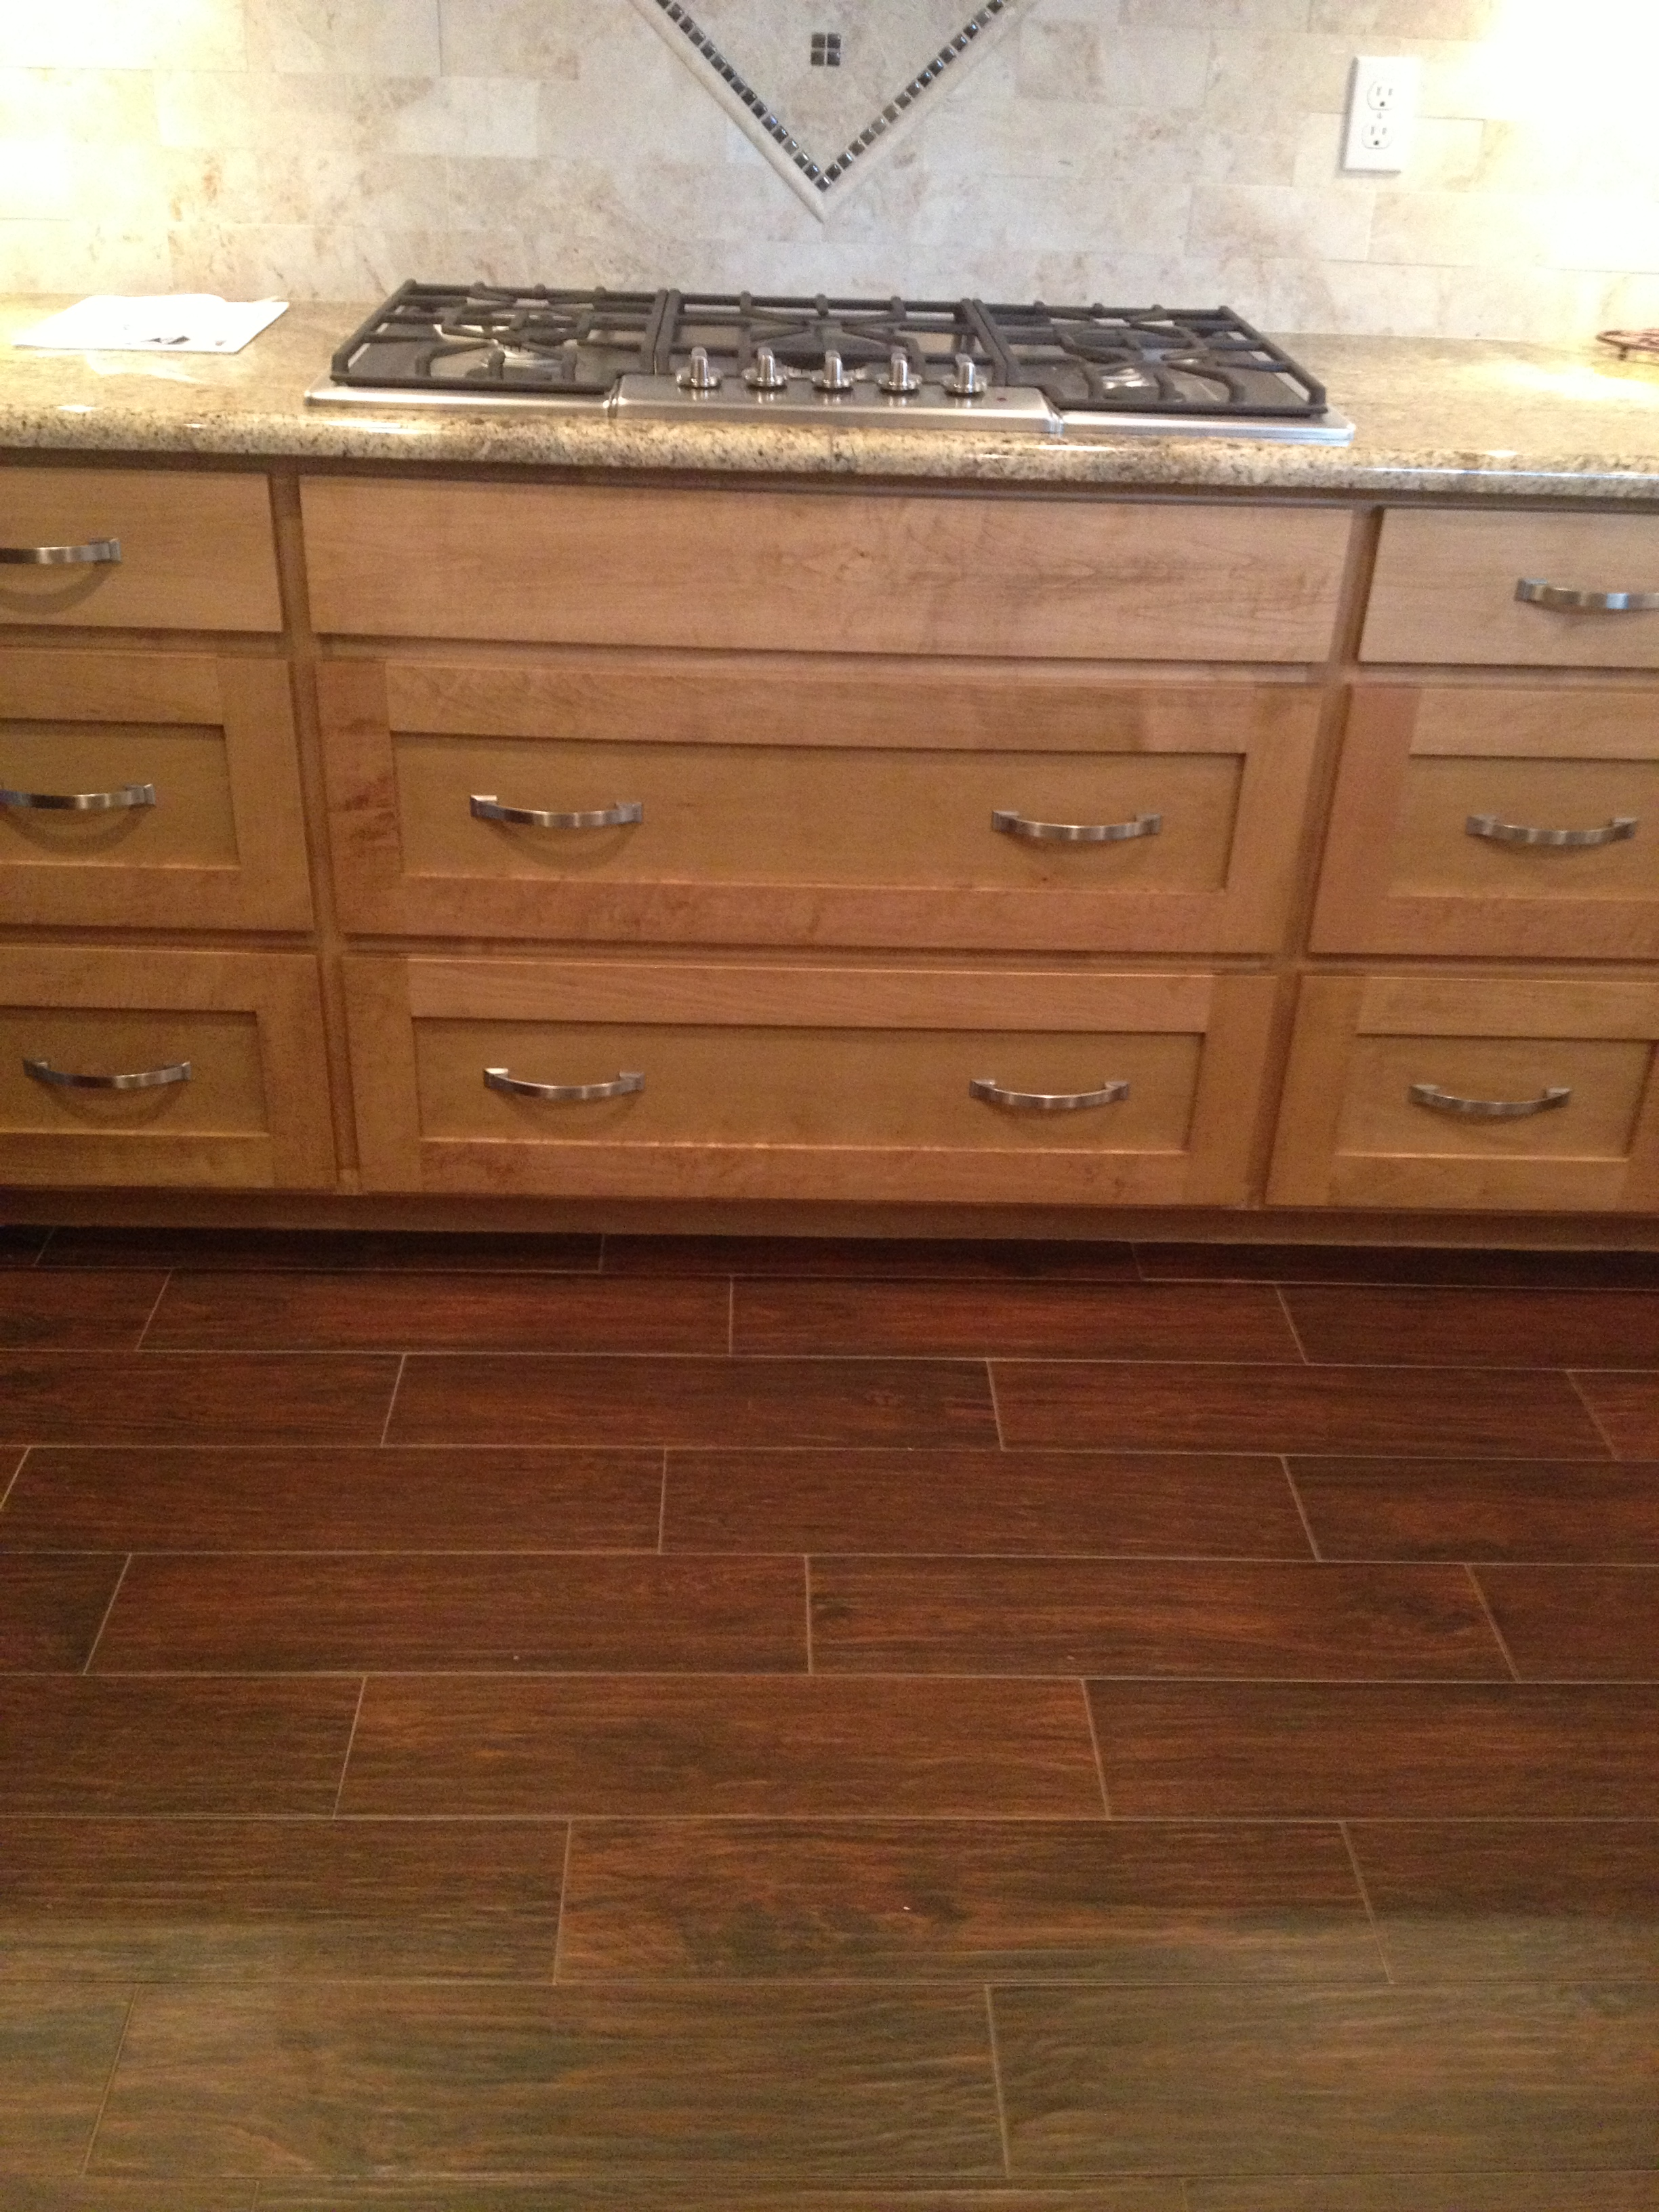 New Technology Combines Look Of Hardwood Floors With Durability Of Tile